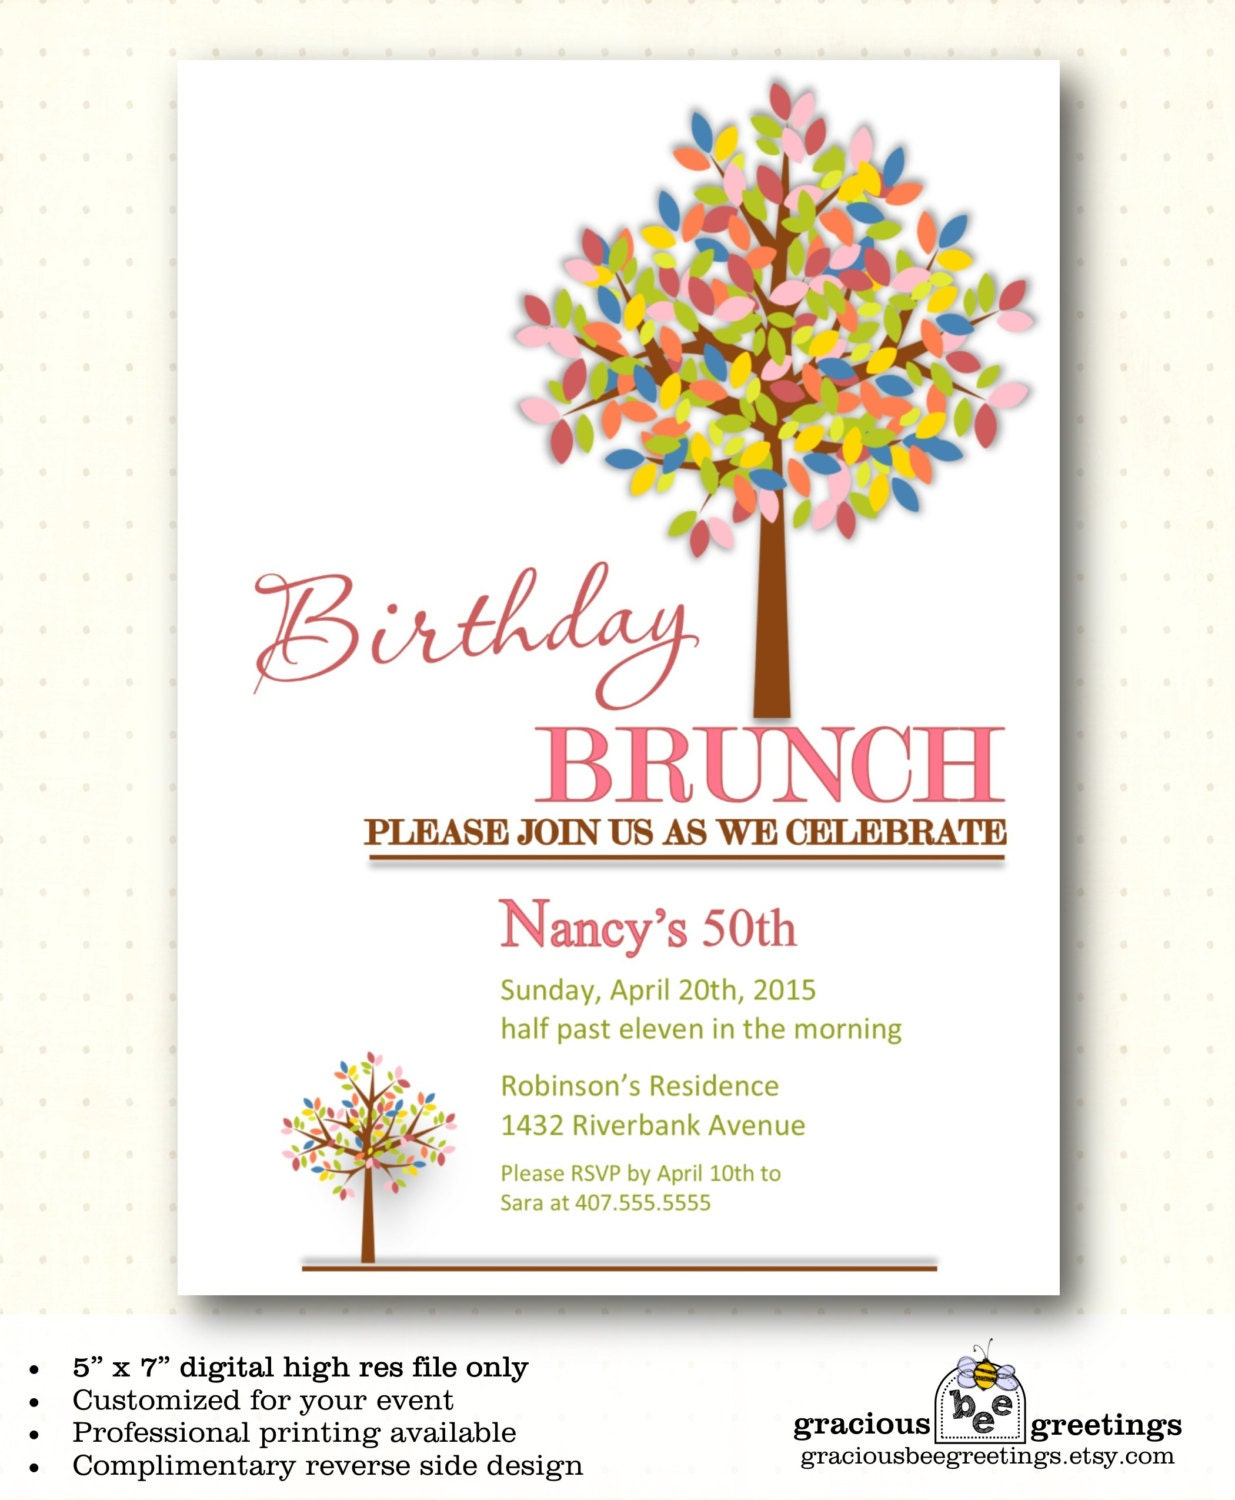 Bridesmaid Luncheon Invitations was awesome invitation ideas